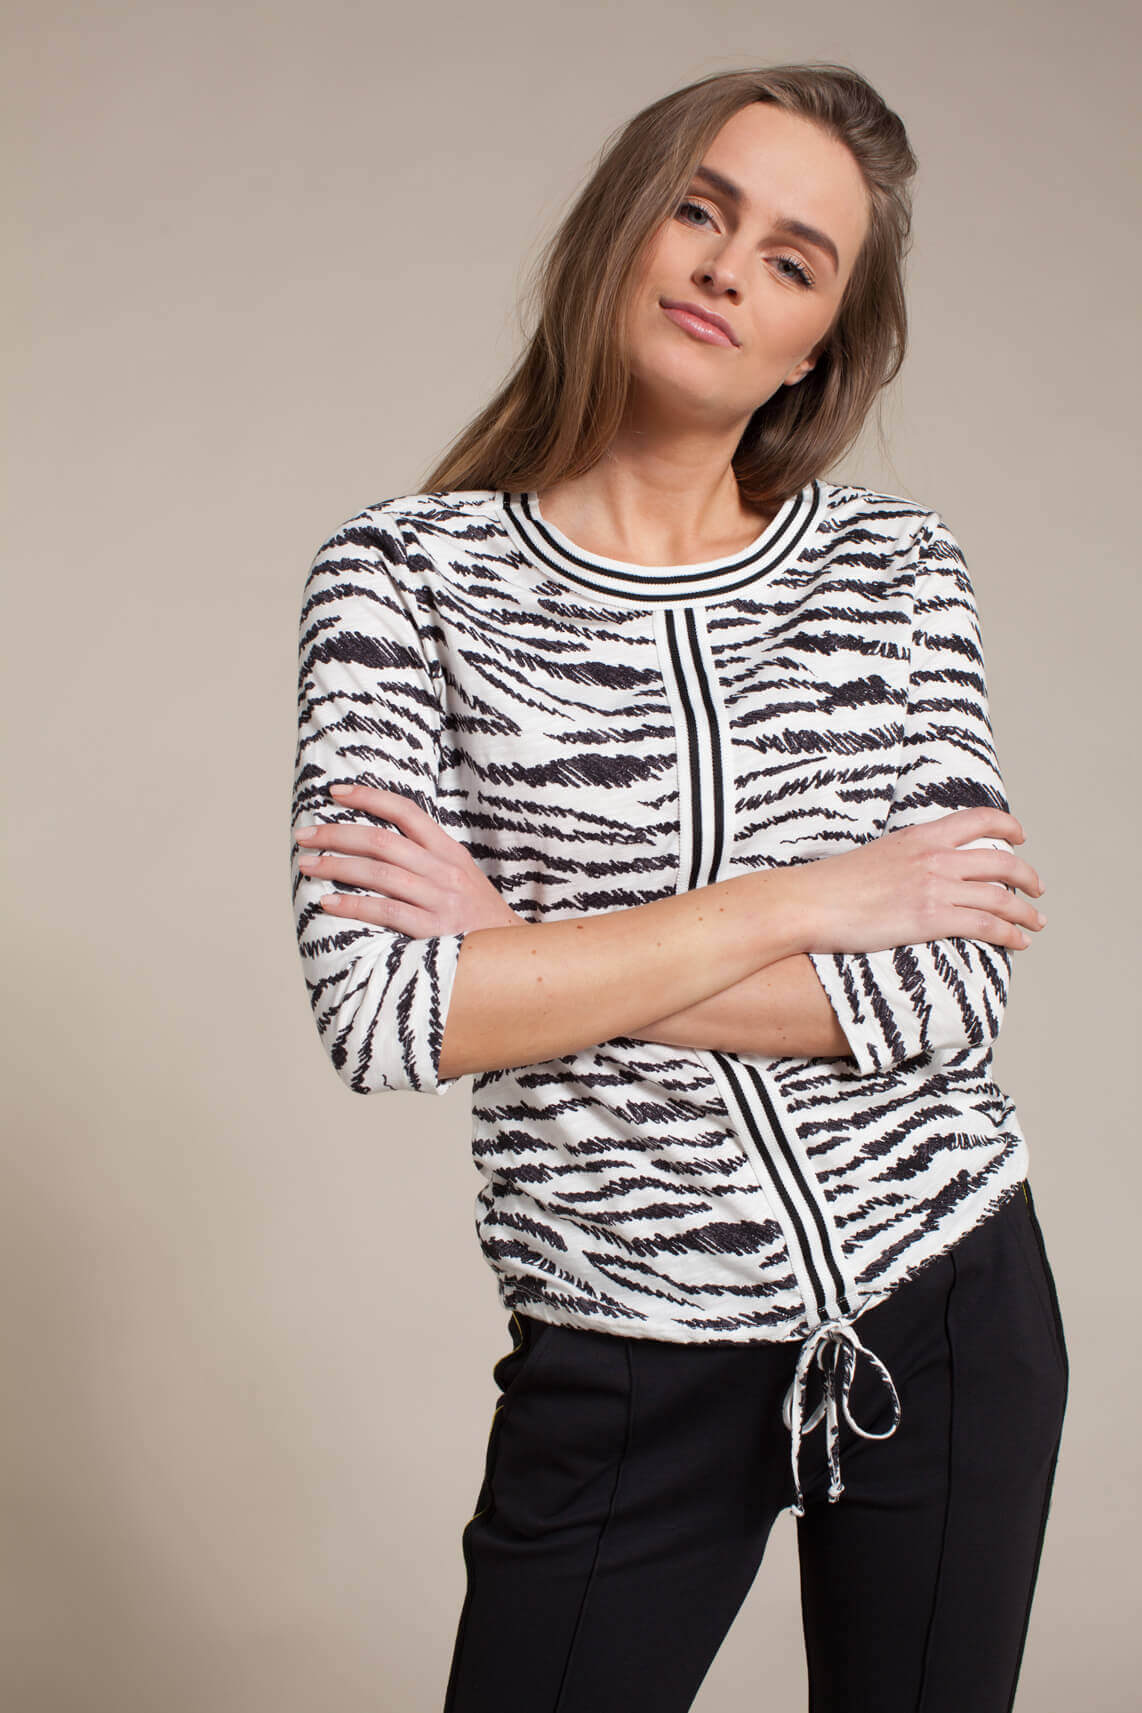 Anna Blue Dames Shirt met animalprint wit